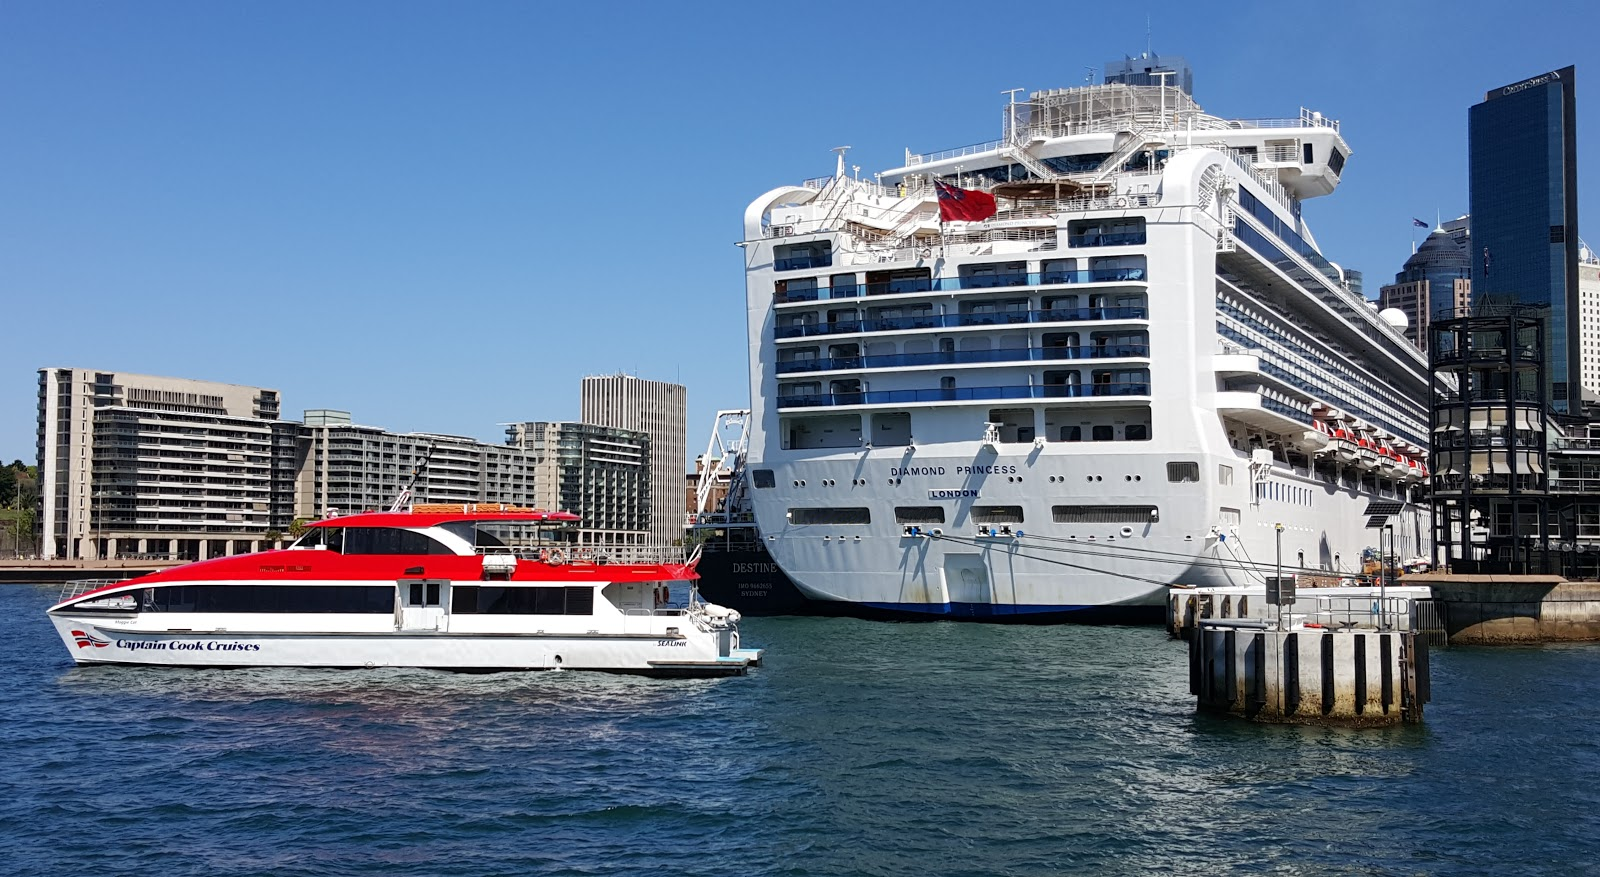 Sydney  City And Suburbs Circular Quay Cruise Boat And